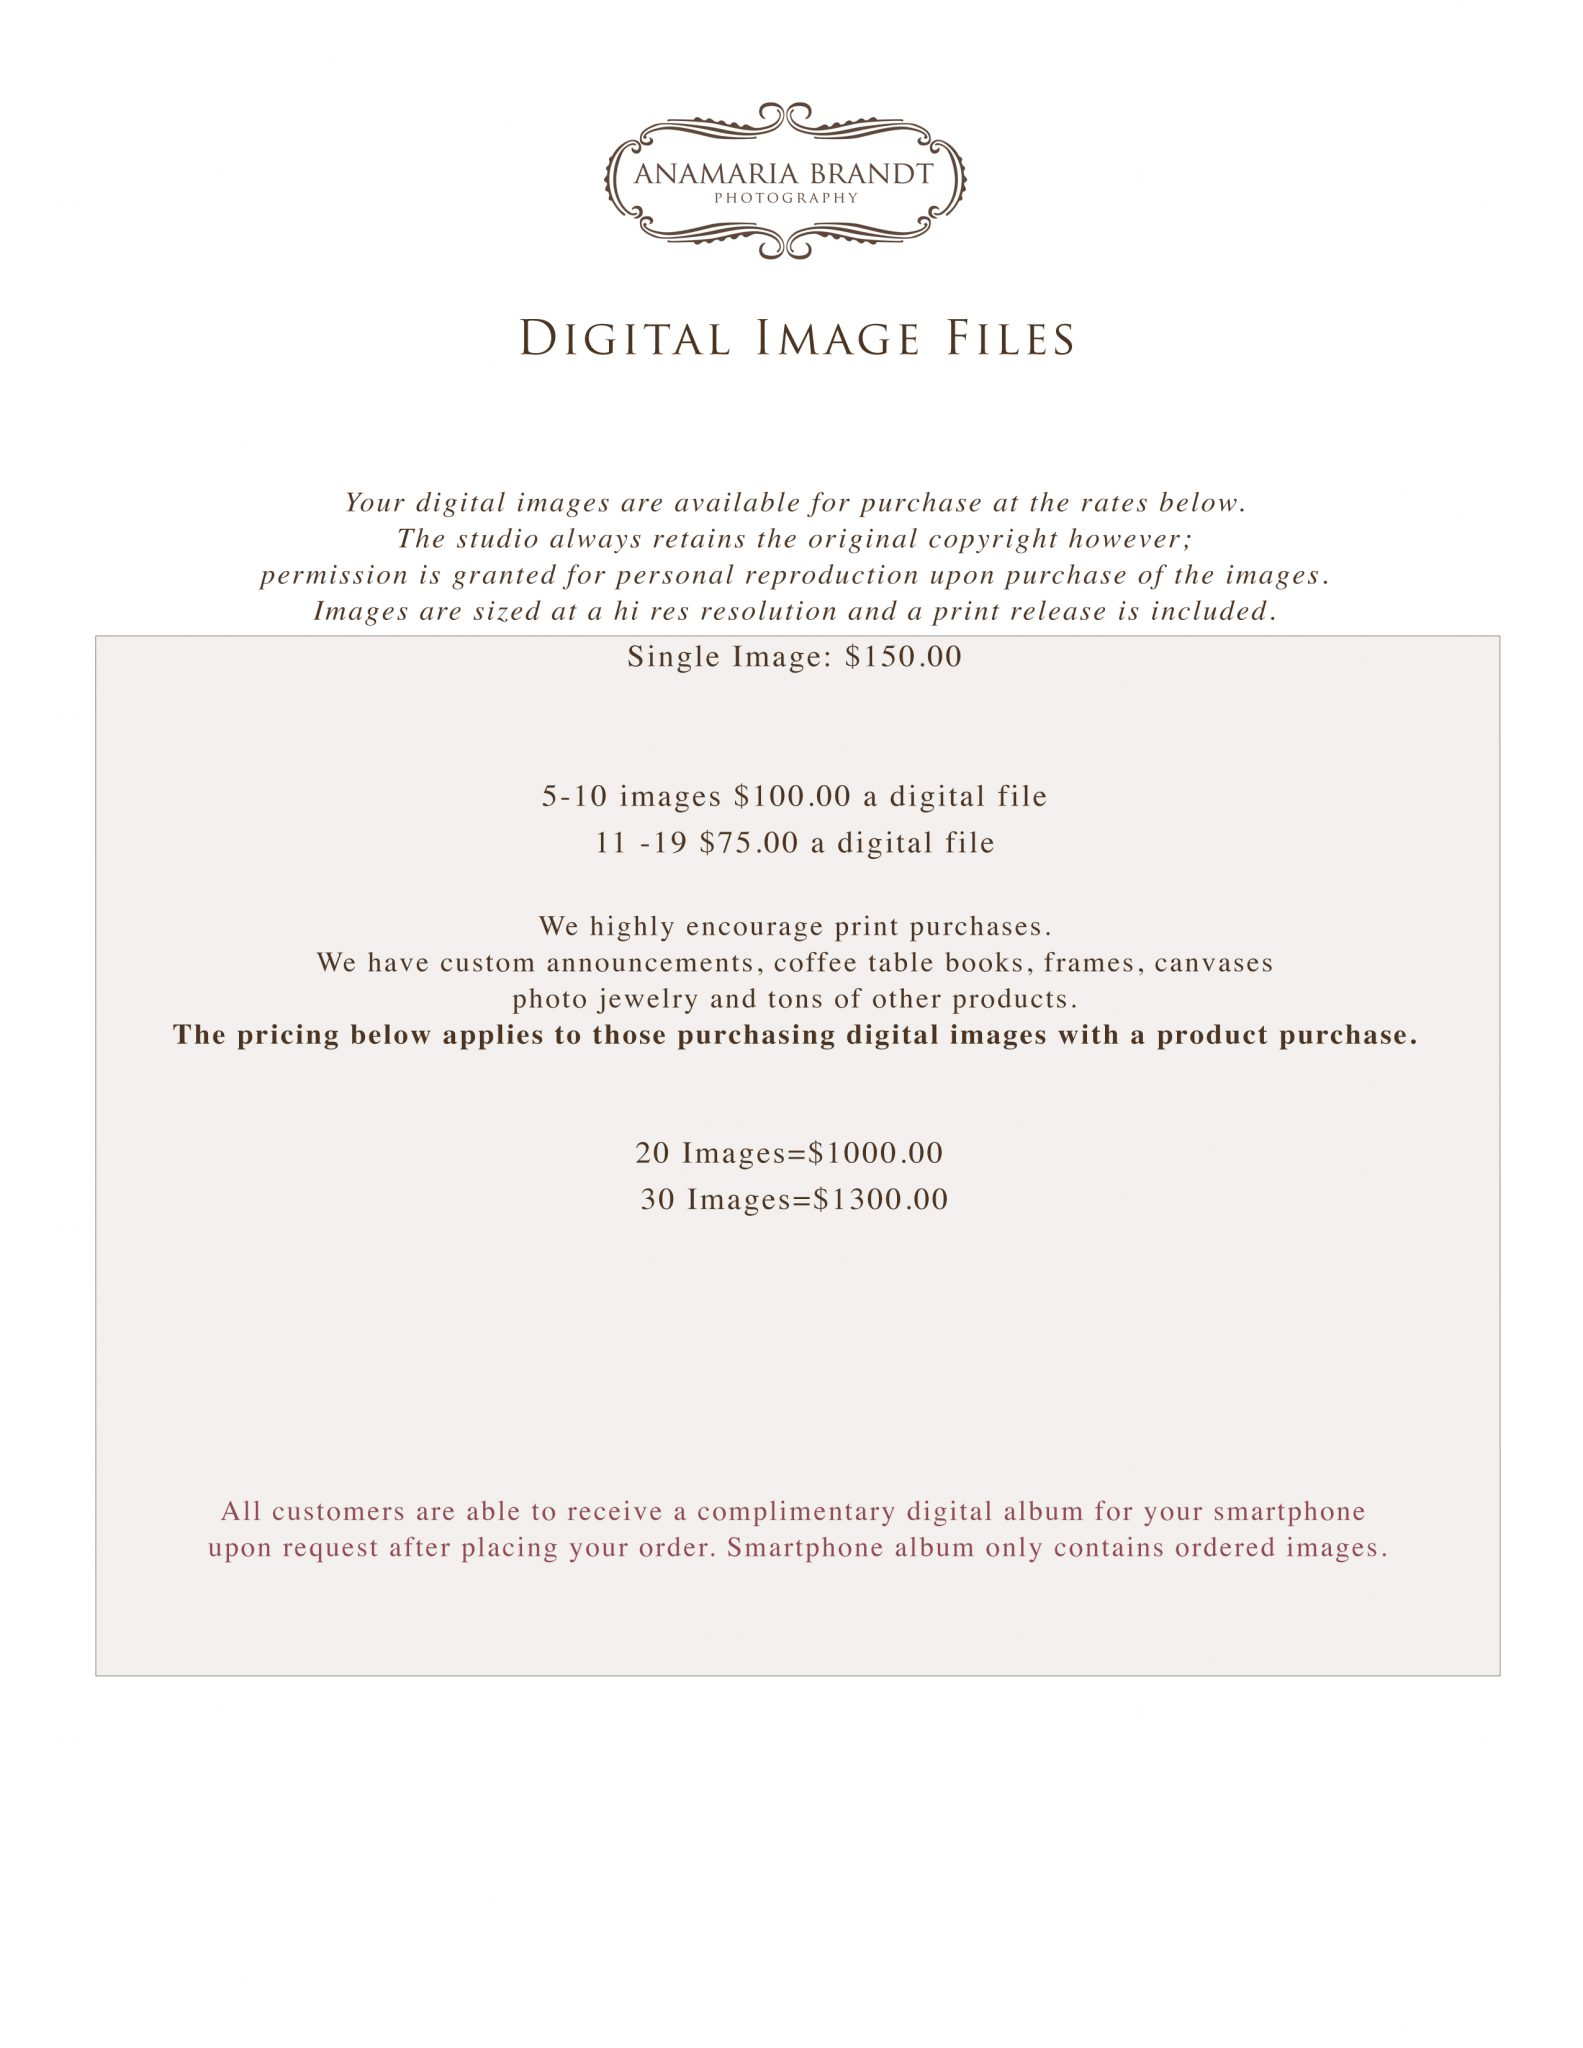 This pricing is for those choosing to buy digital images after paying the session